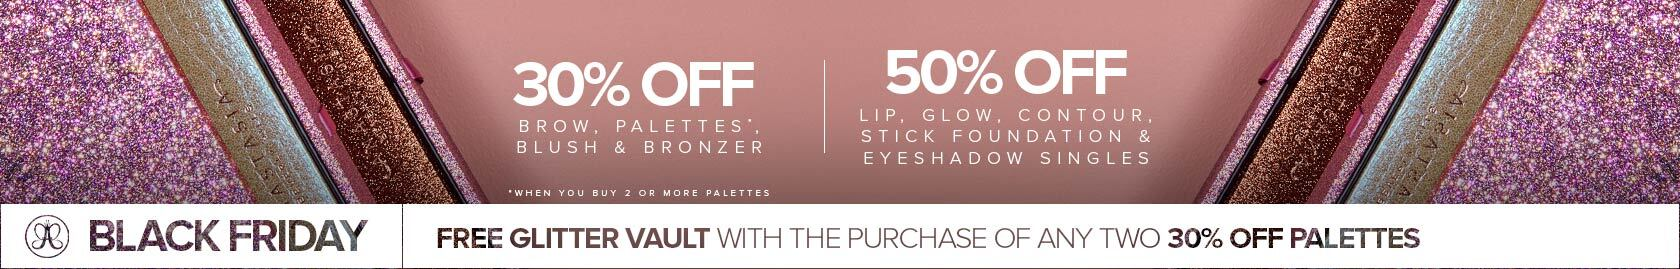 30% off Brows, Palettes, Blush and Bronzer |  50% off Lip, Glow, Contour, Stick Foundation and Eyeshadow Singles